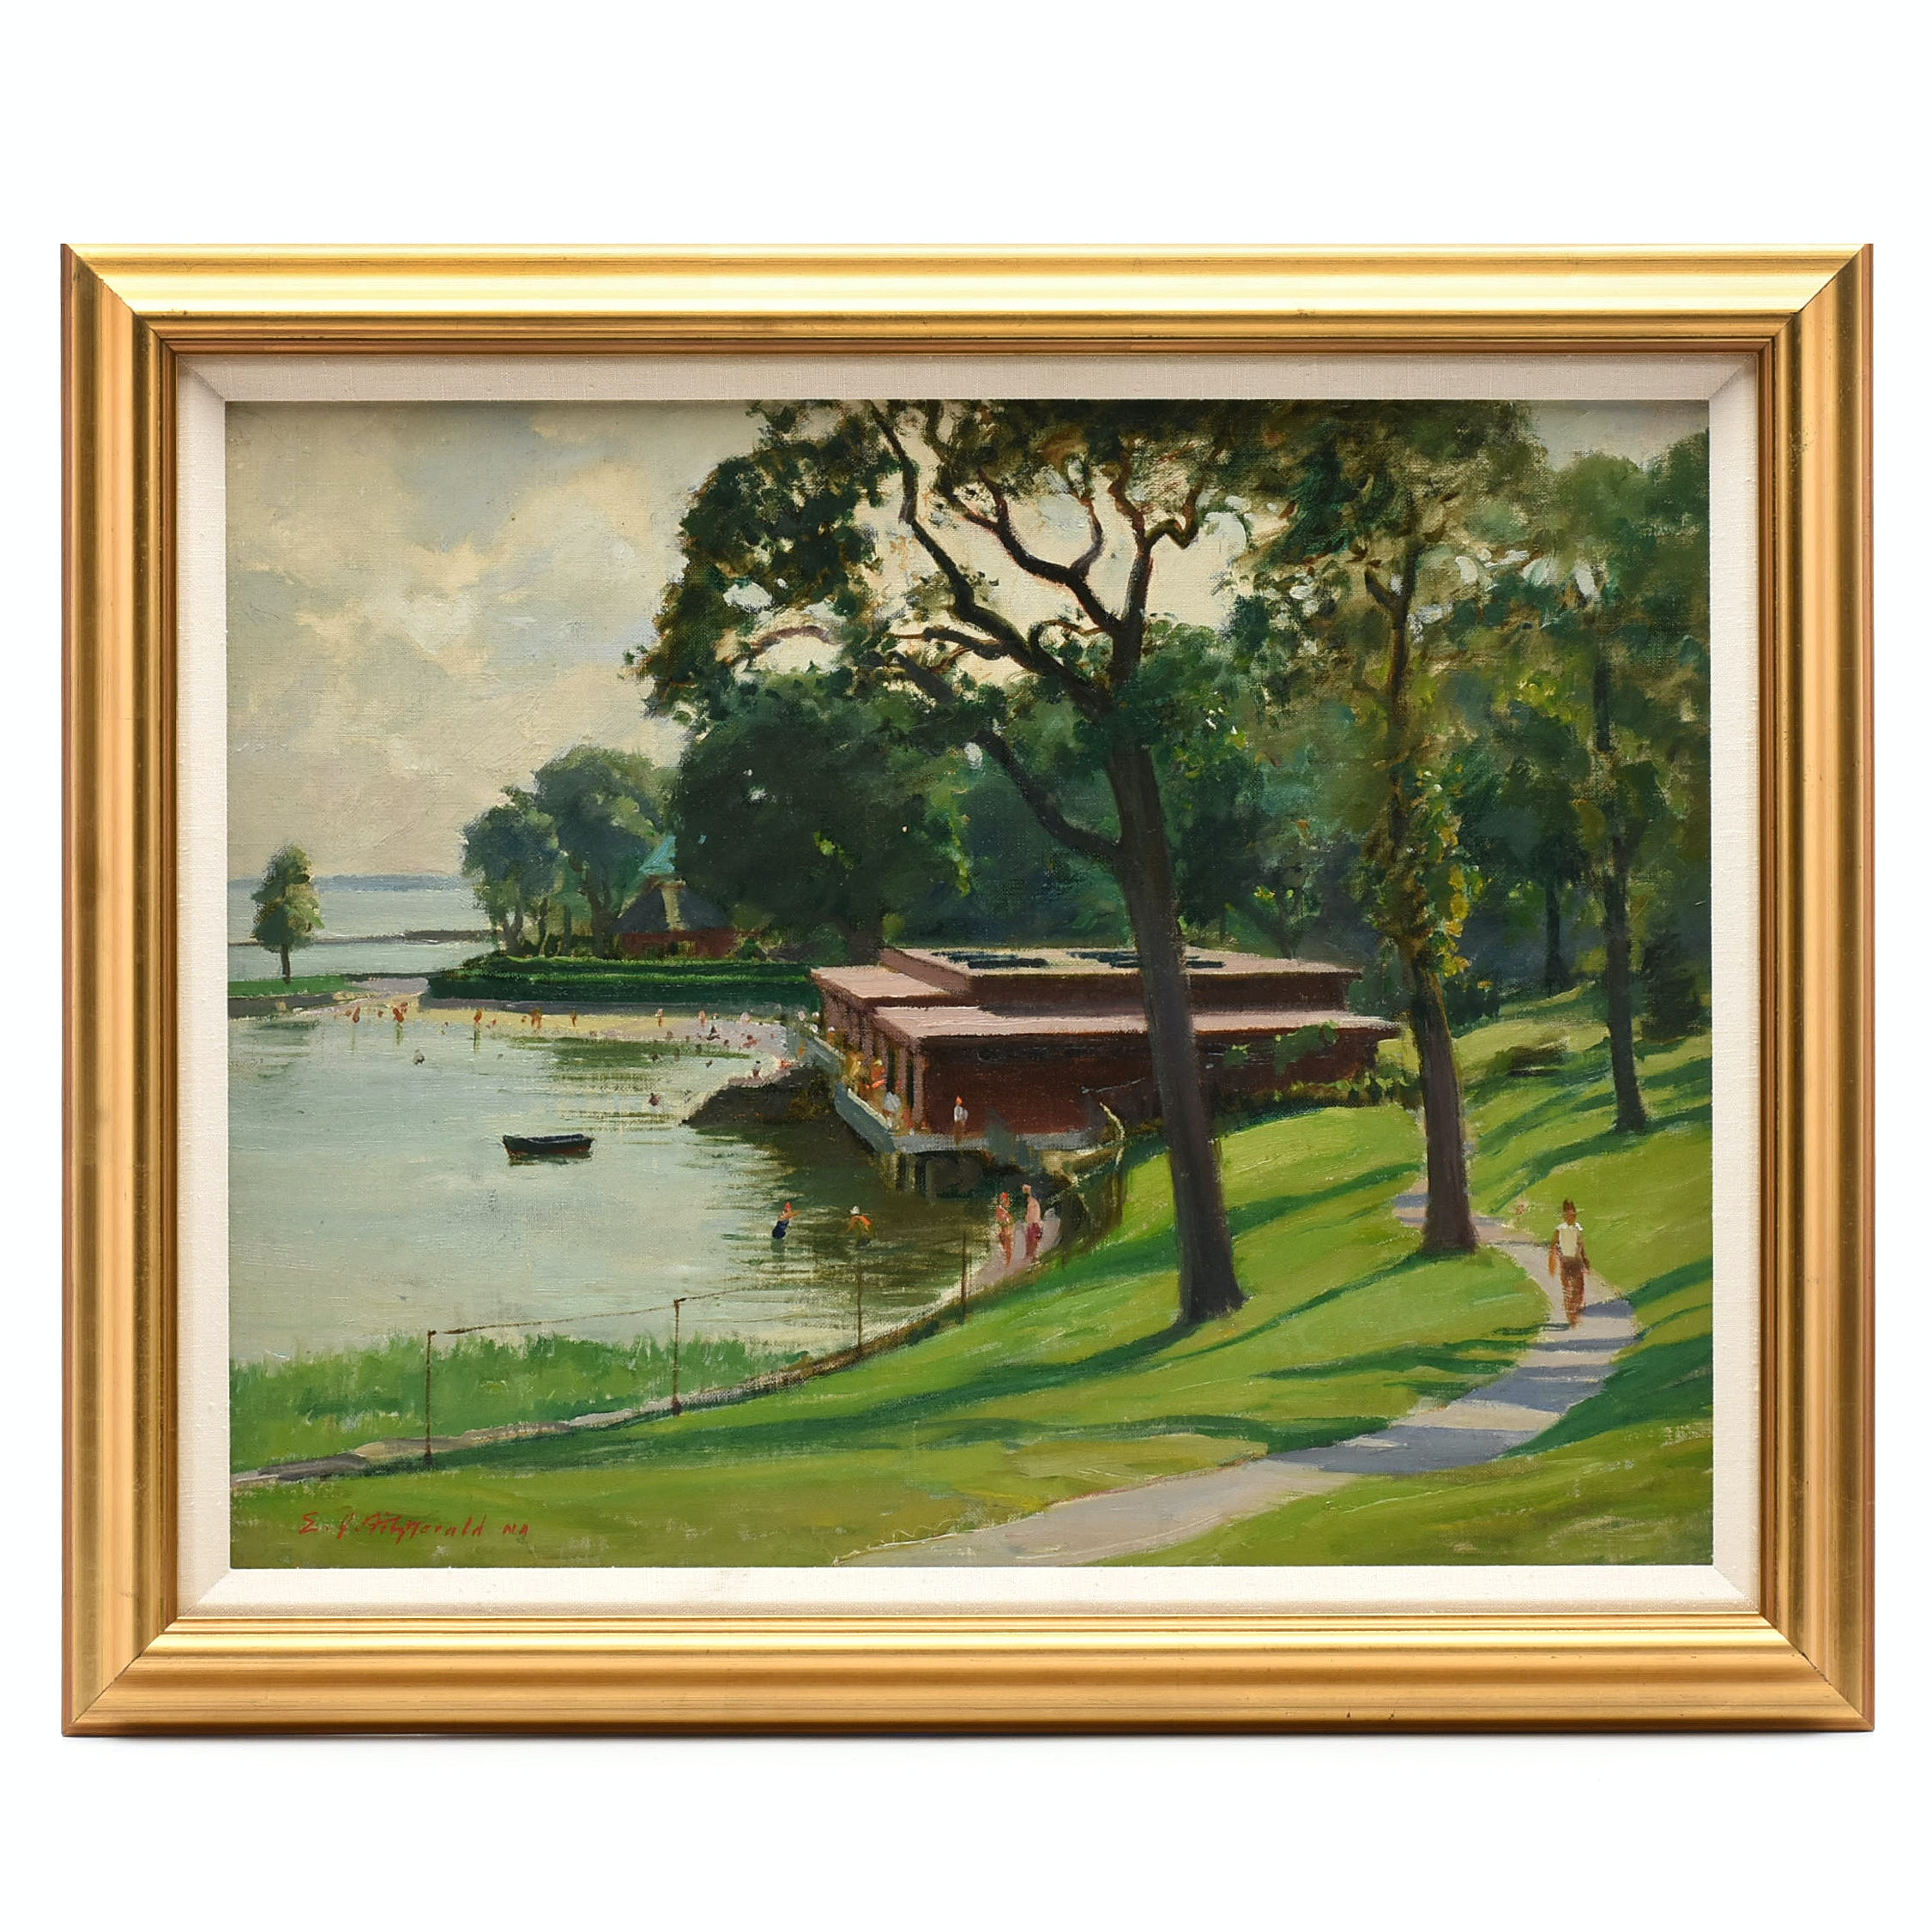 Edmond J. Fitzgerald Oil Painting